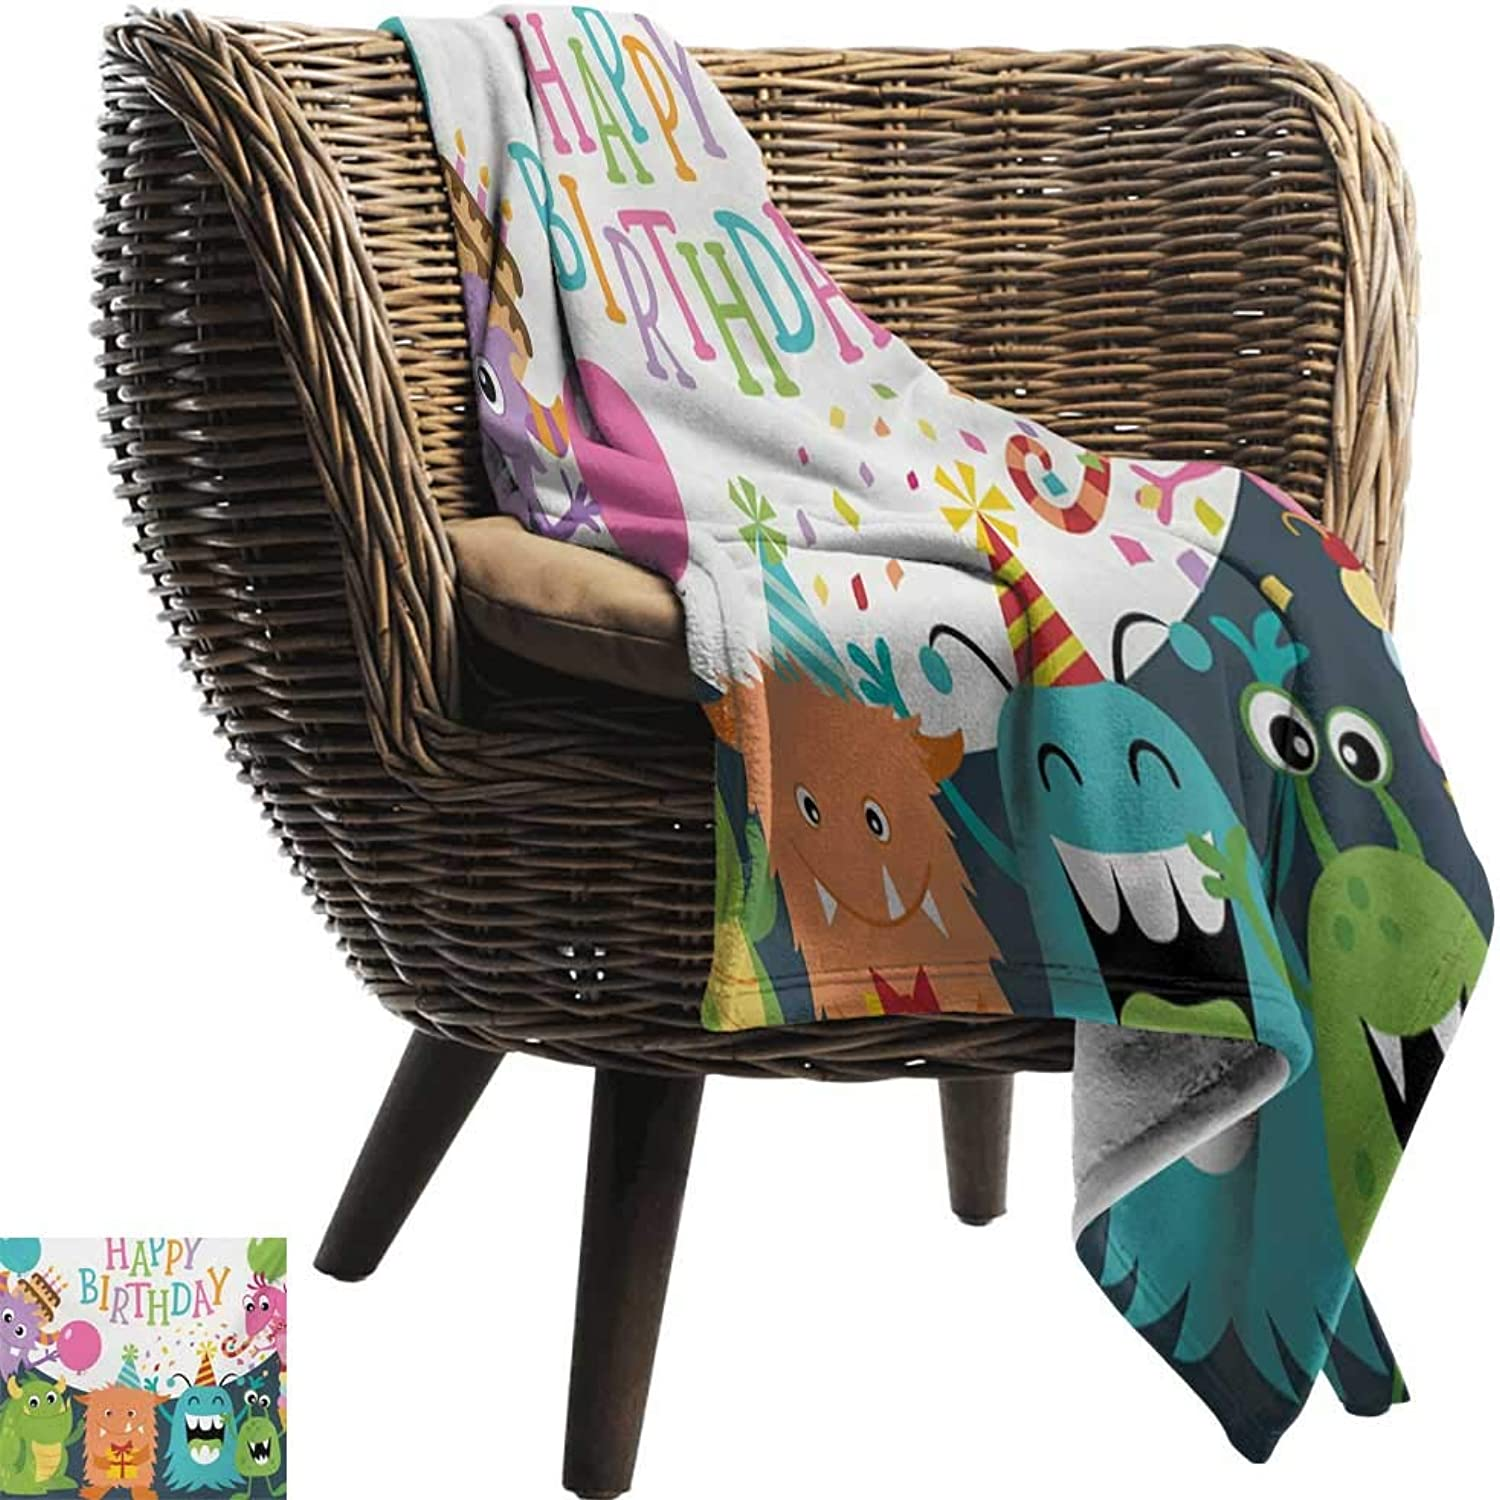 BelleAckerman Travel Throw Blanket,Kids Birthday,Little Baby Monsters with The Party Cones Confetti Rain and Balloons Image,Multicolor,Super Soft and Warm,Durable Throw Blanket 35 x60